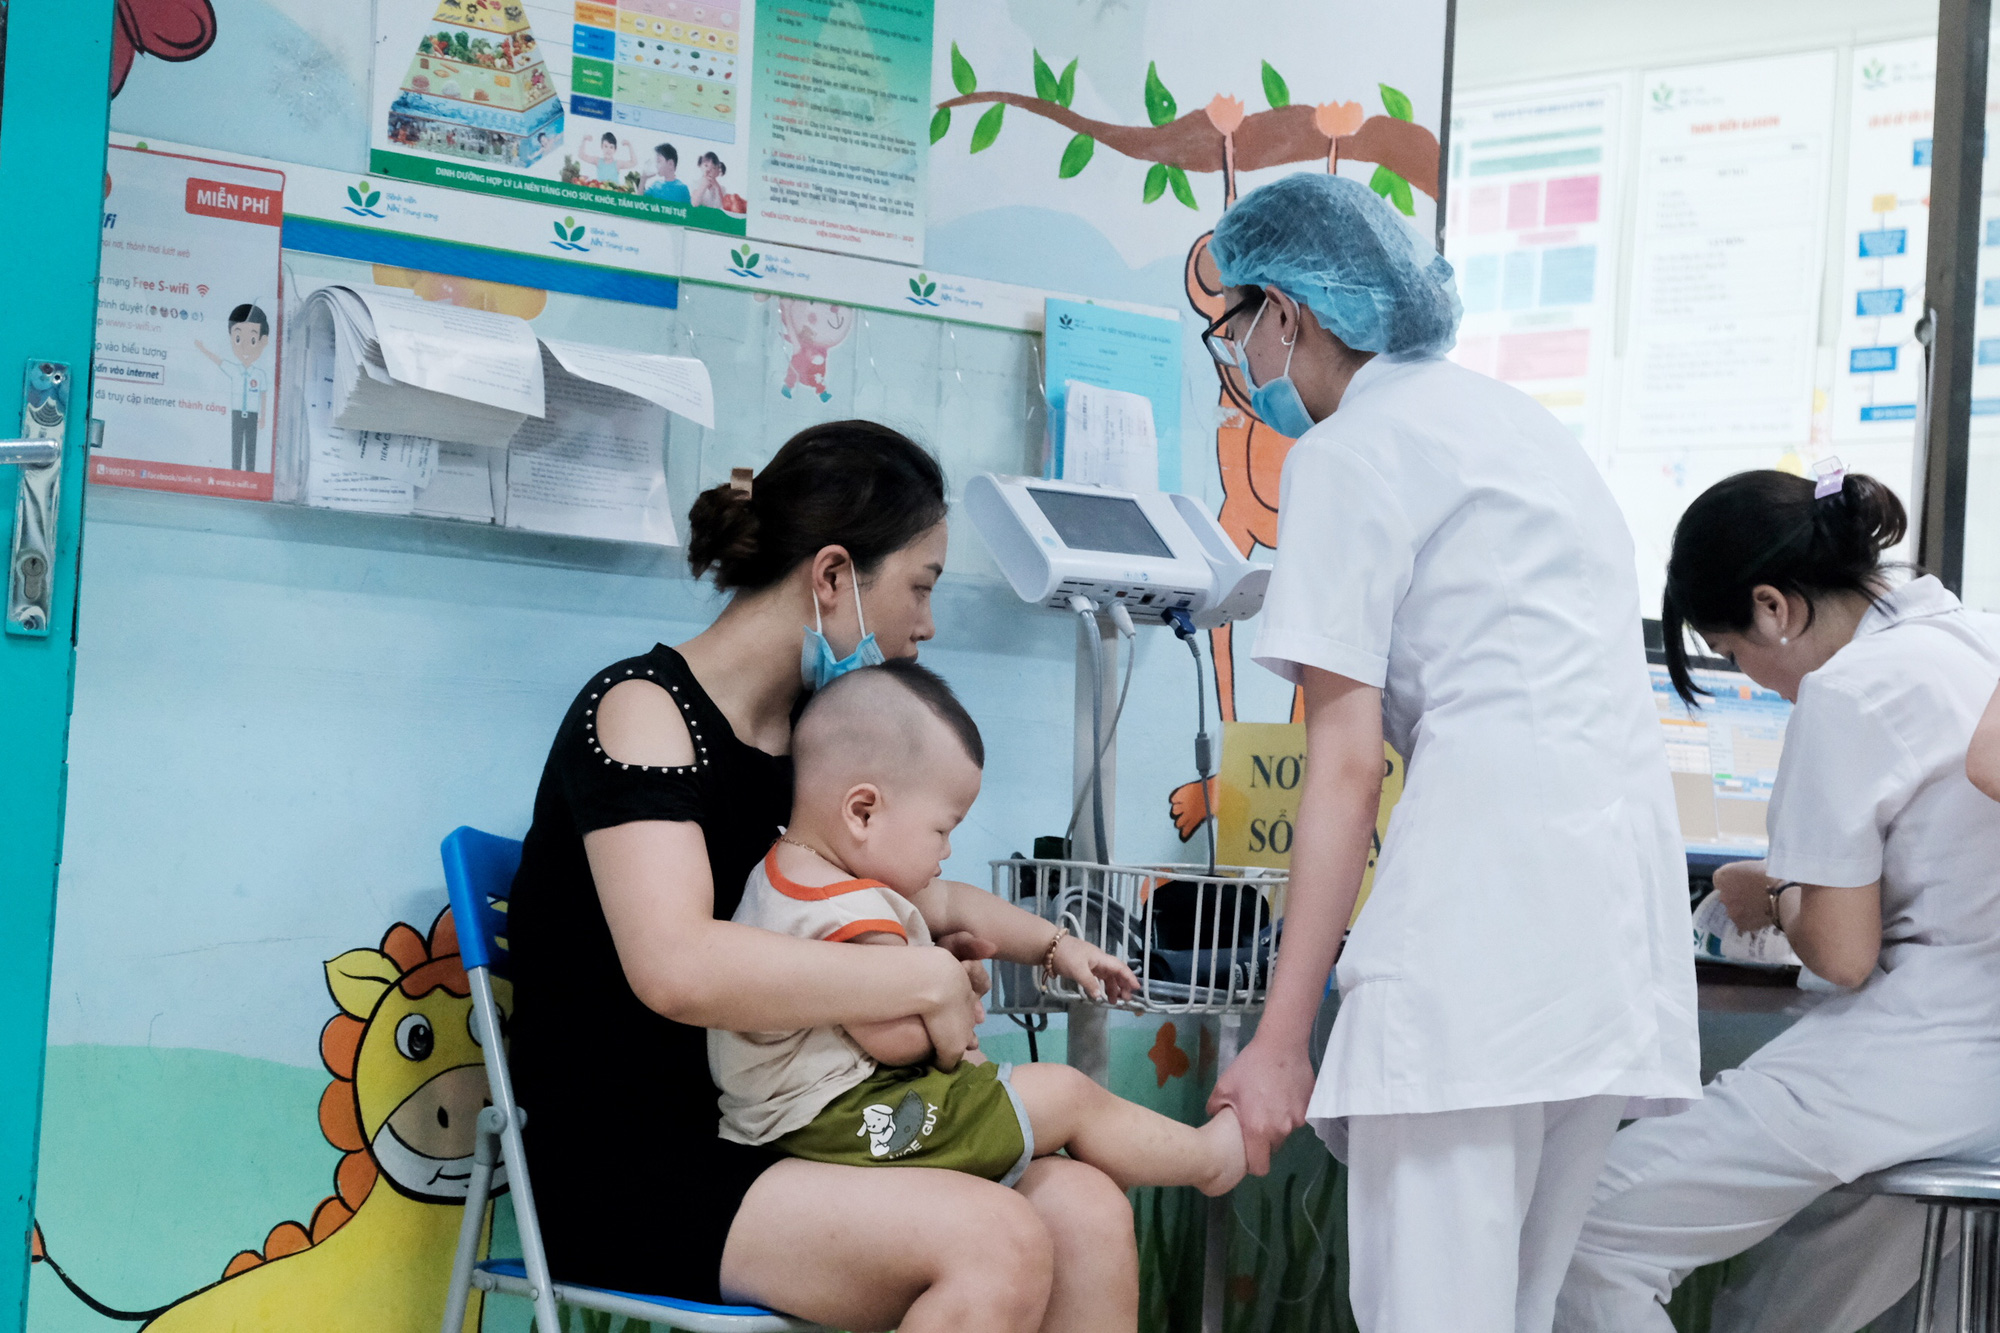 A young boy is being examined at the Vietnam National Children's Hospital in Hanoi, June 23, 2020. Photo: Mai Thuong / Tuoi Tre